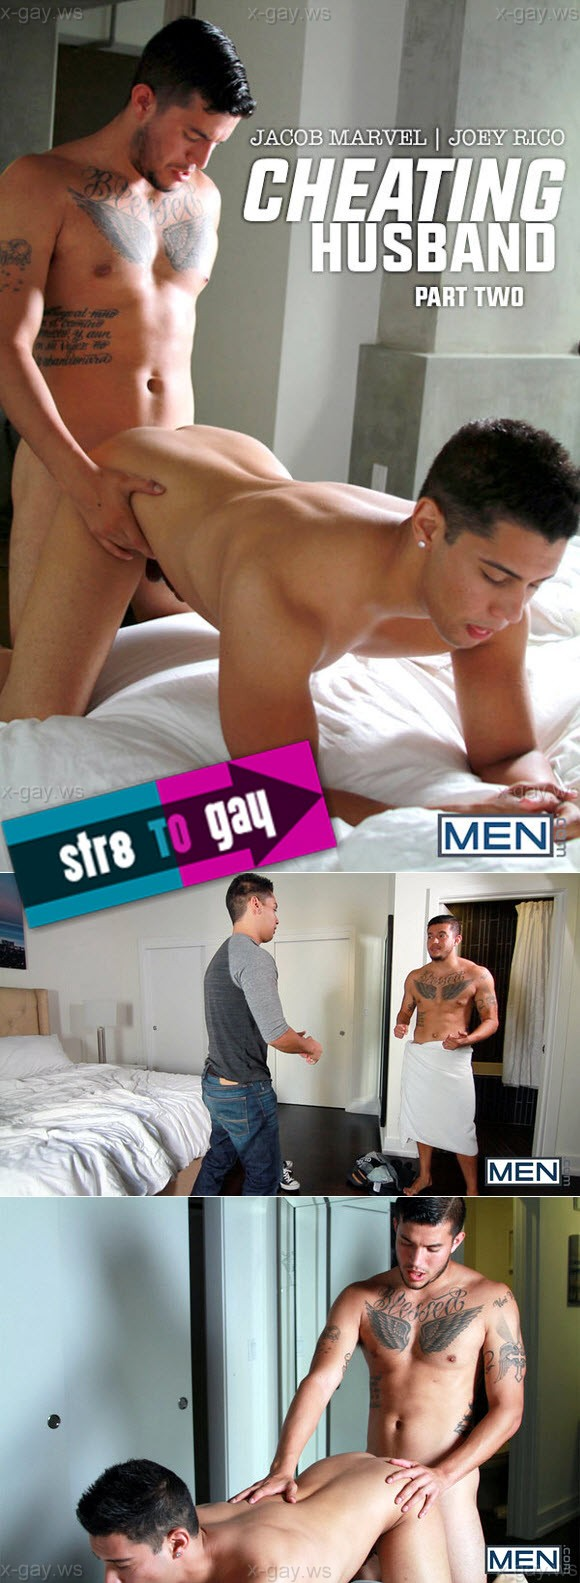 MEN – Str8 to Gay – Cheating Husband, Part 2: Jacob Marvel & Joey Rico